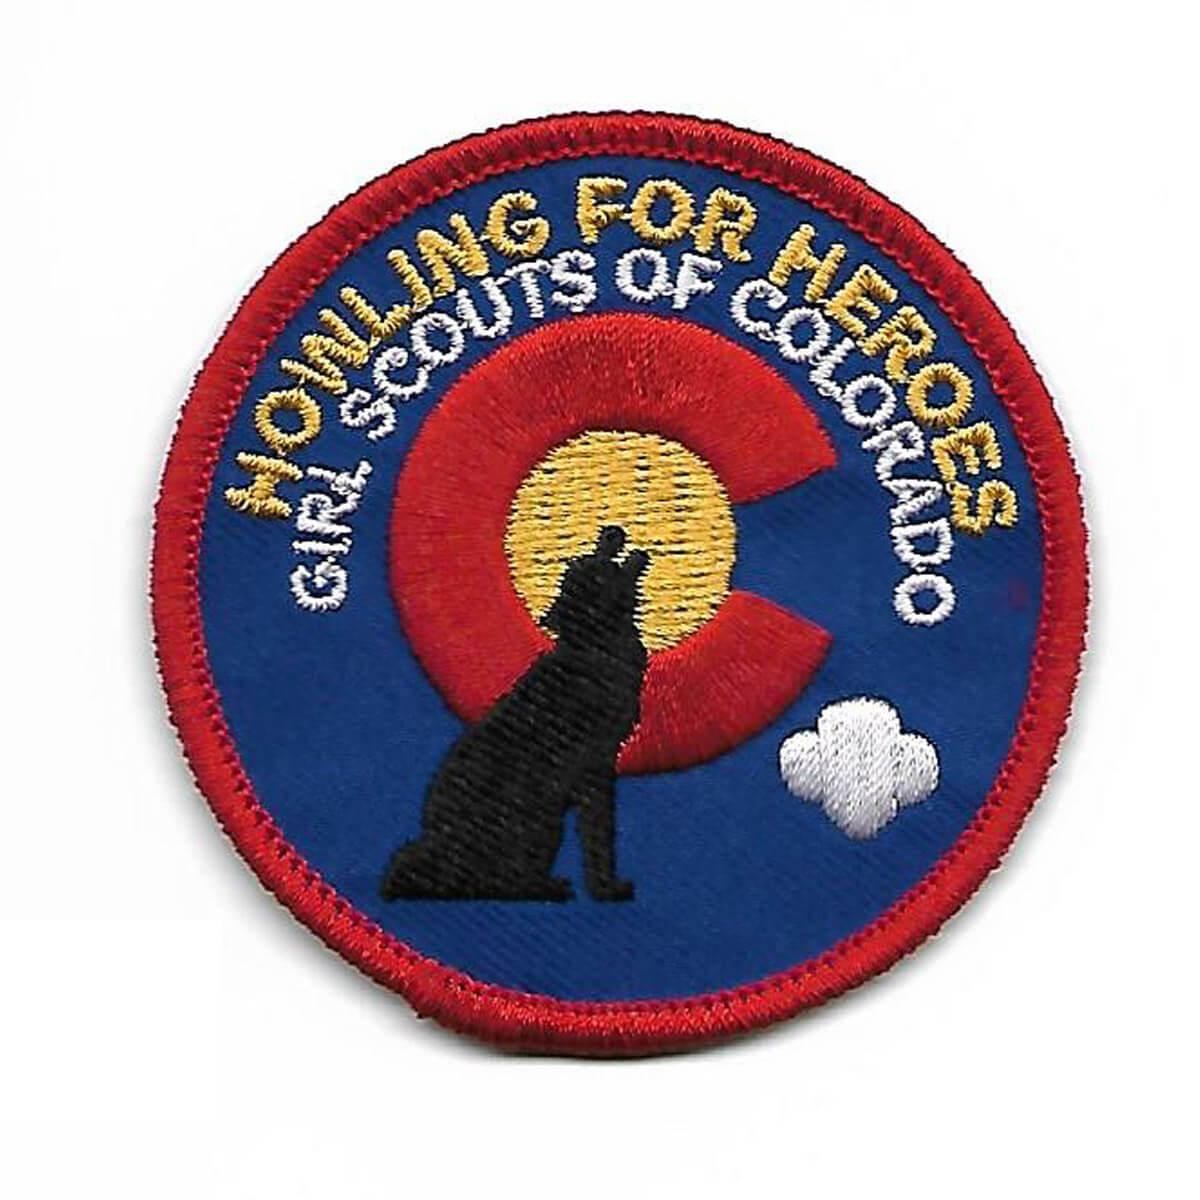 GSCO Howling for Heroes Patch